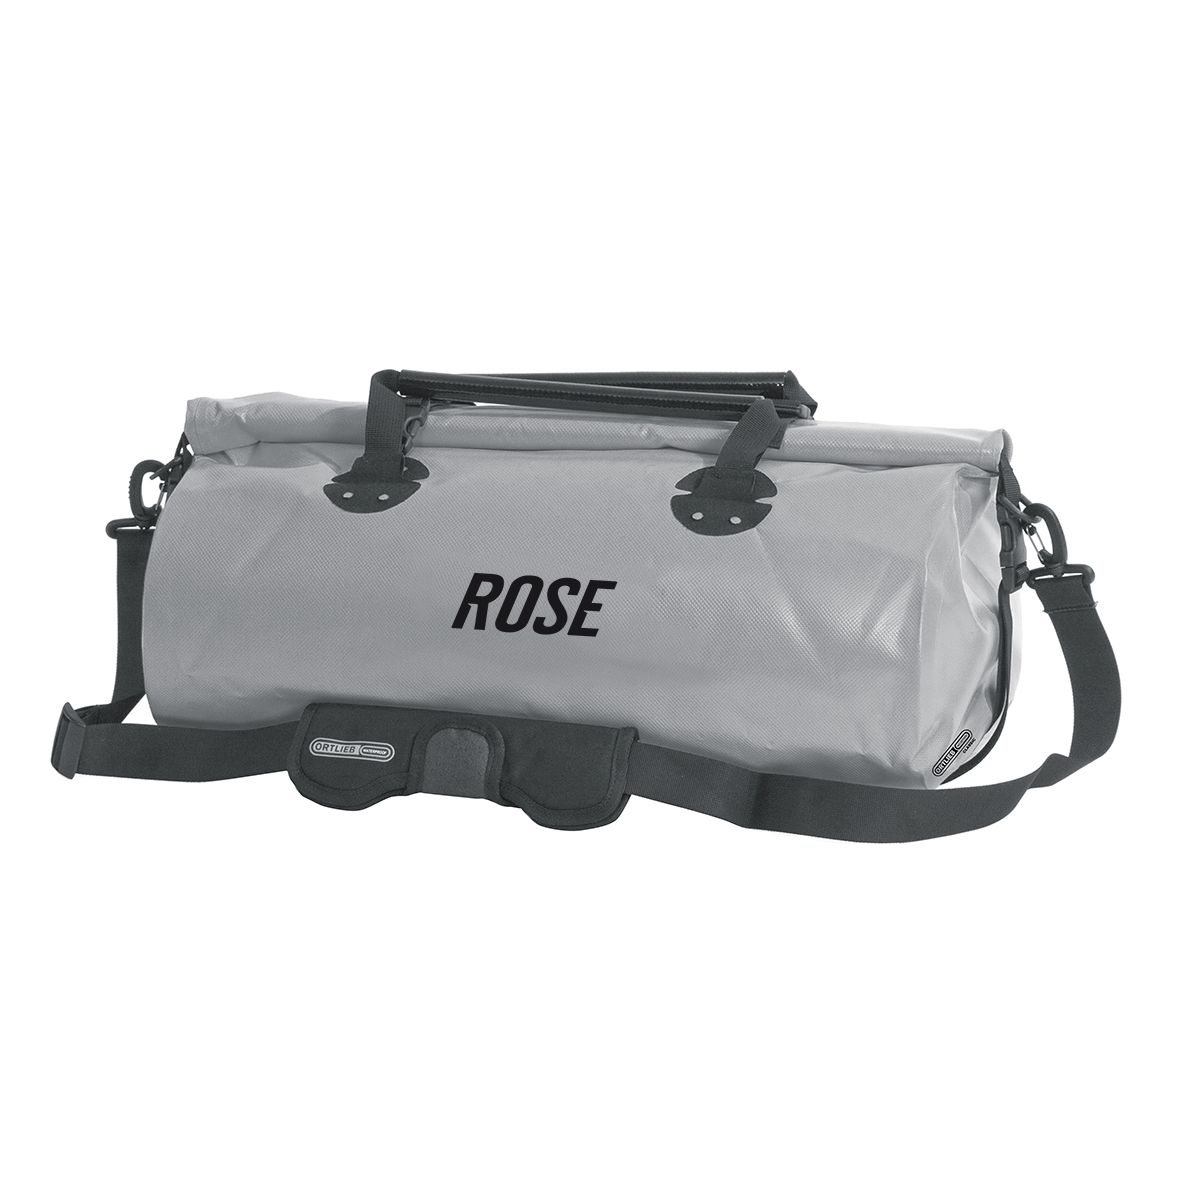 RACK PACK/ROSE Reisetasche M 31l